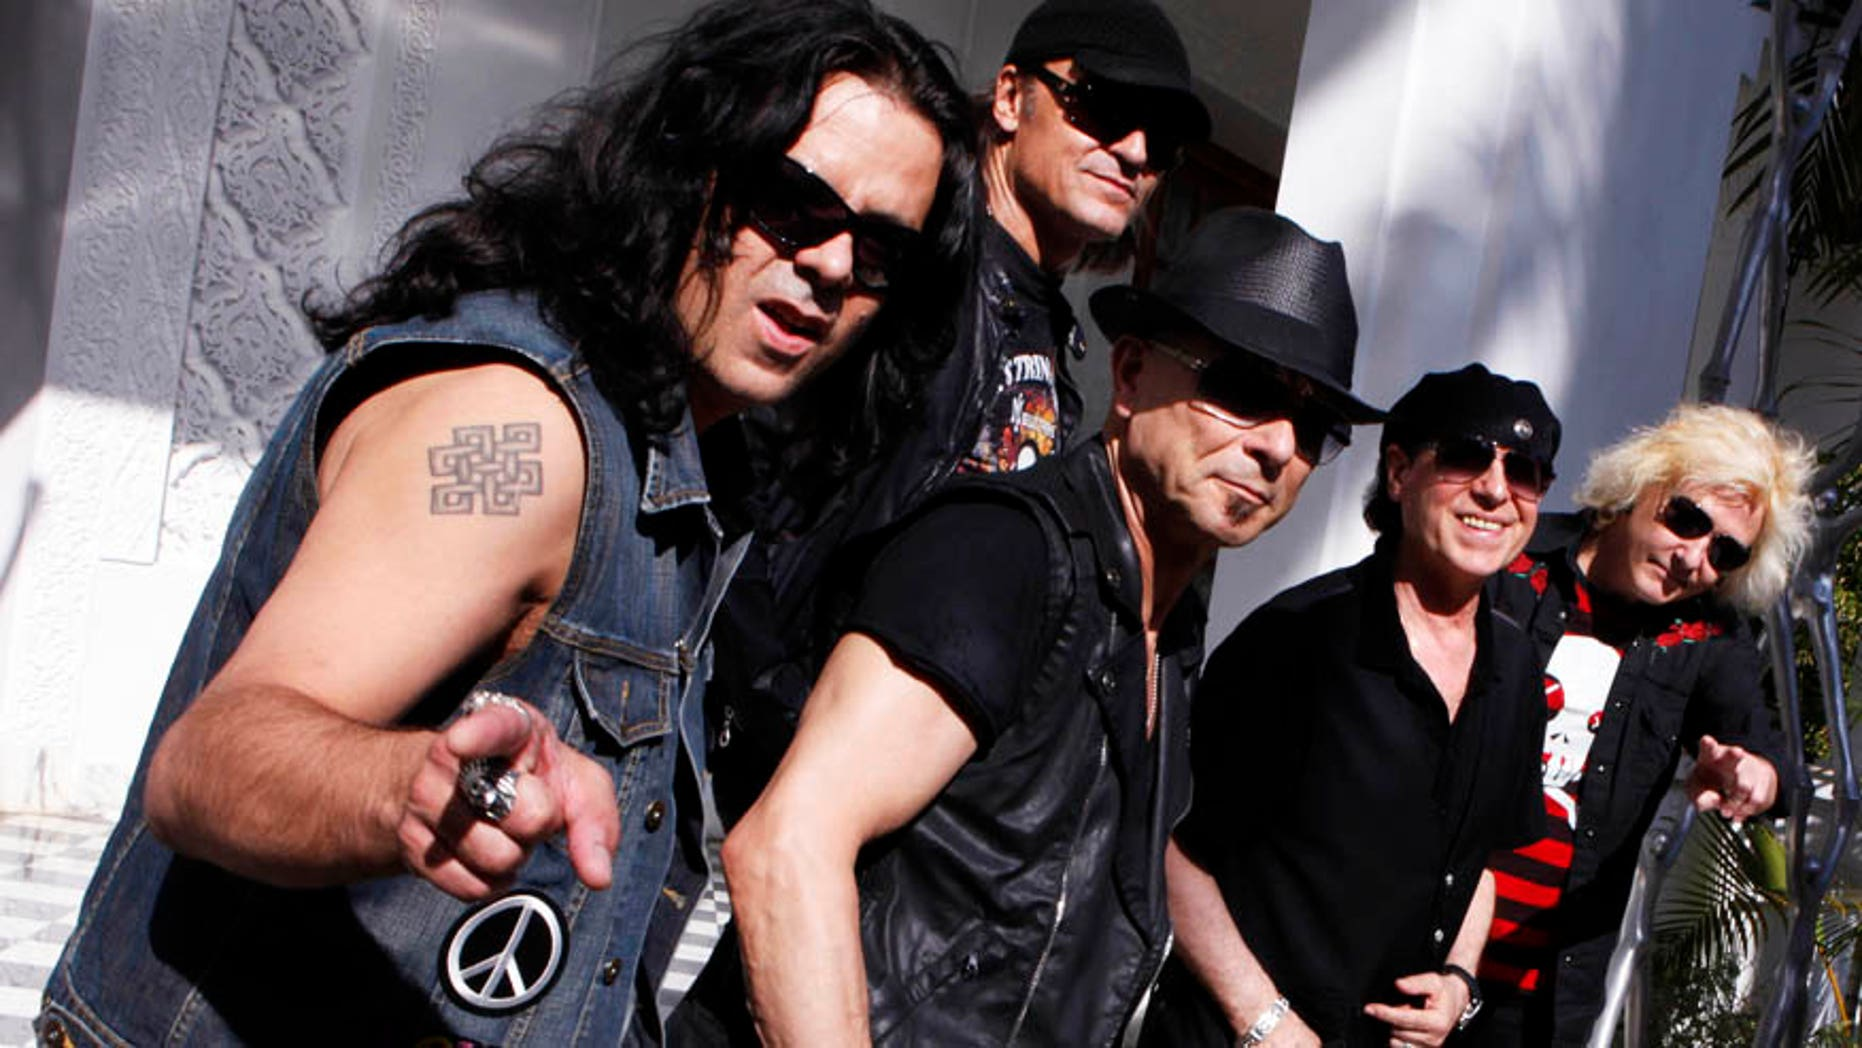 German metal legends the Scorpions helped tear down Cold War